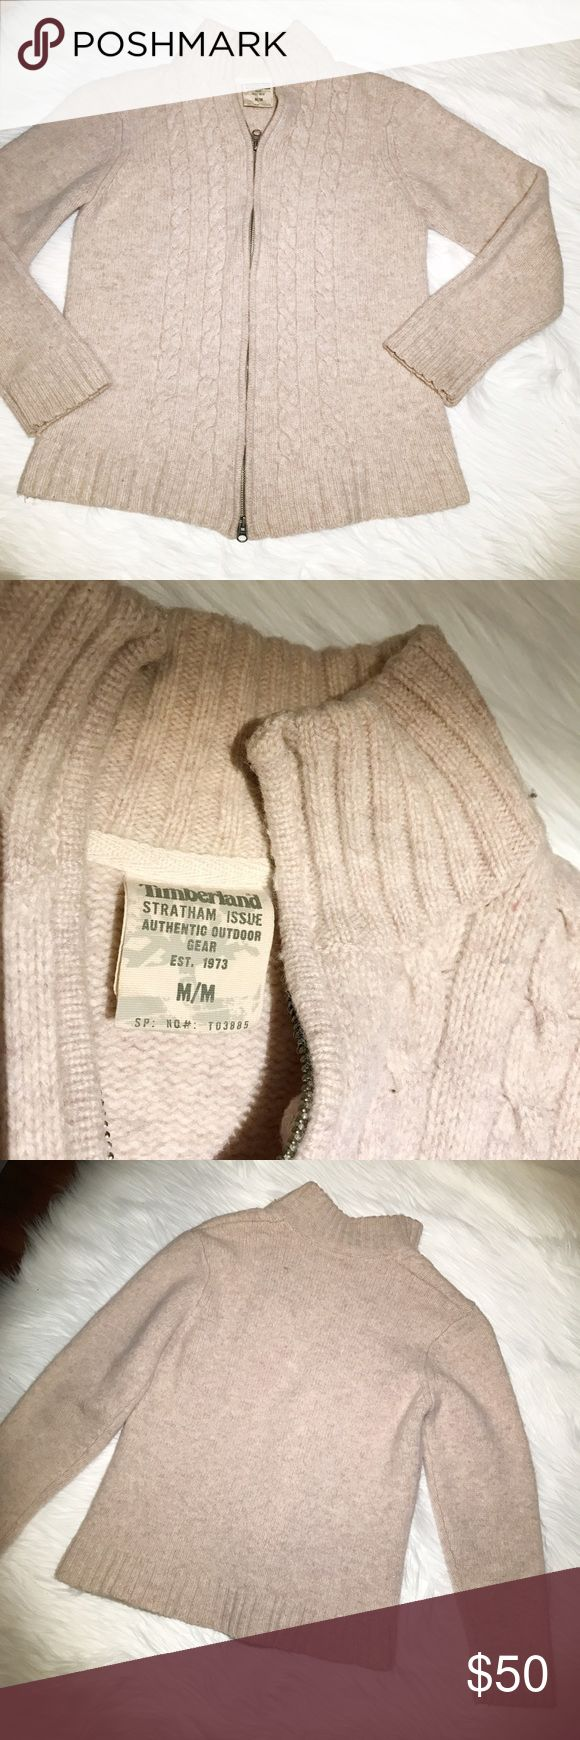 """Men's Timberland Beige Knit Lambswool Sweater Med Men's Timberland Stratham Issue Beige Lambswool Knit Zipper Sweater Medium  Gently used, no flaws. Please see photos for details   Armpit to armpit -- 18"""" Length -- 26"""" Timberland Sweaters Crewneck"""